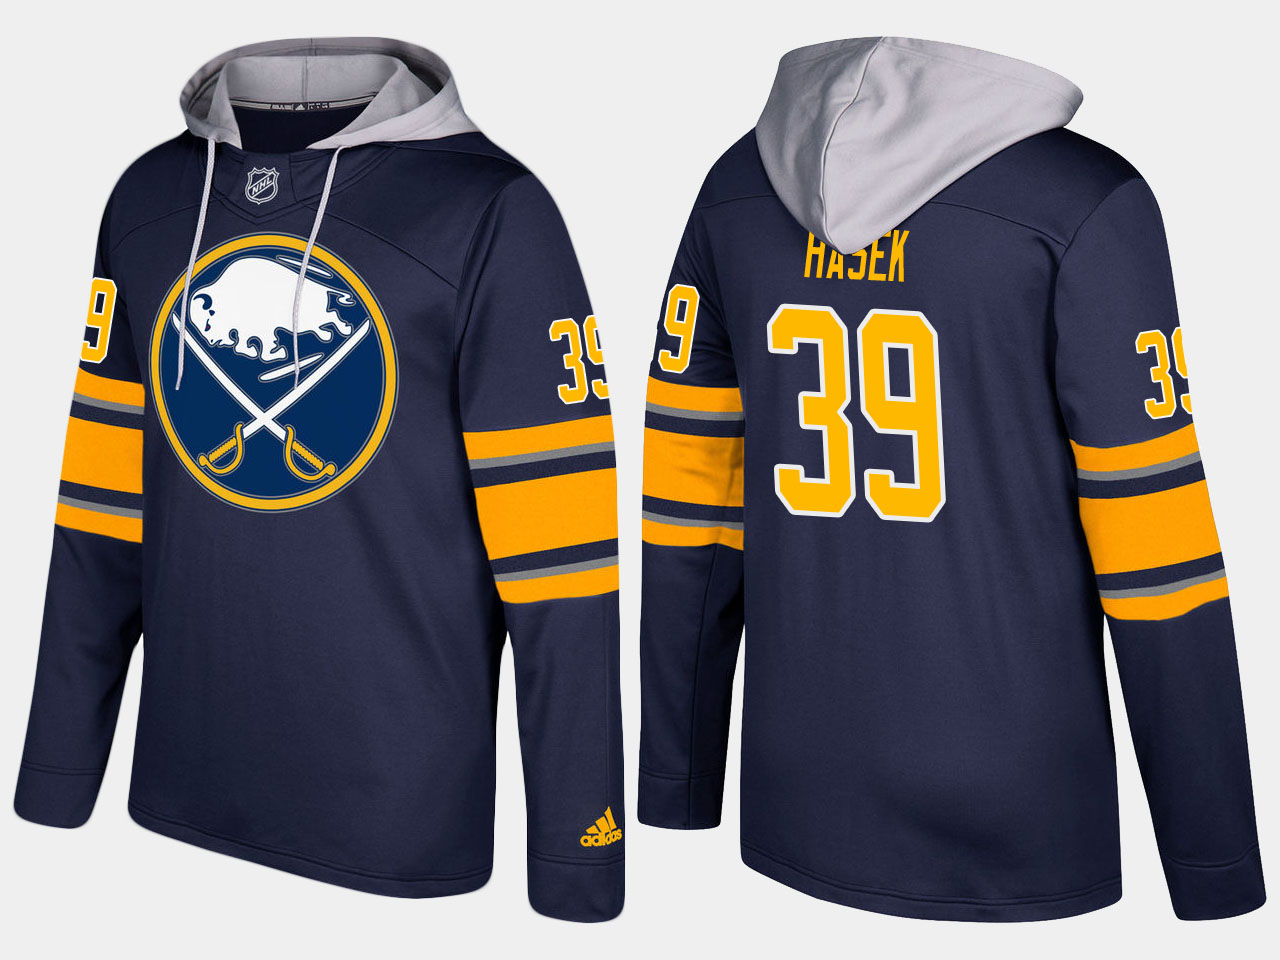 58c67c3ae Buffalo Sabres   Cheap NFL Jerseys-Buy NFL Jerseys Online From China ...